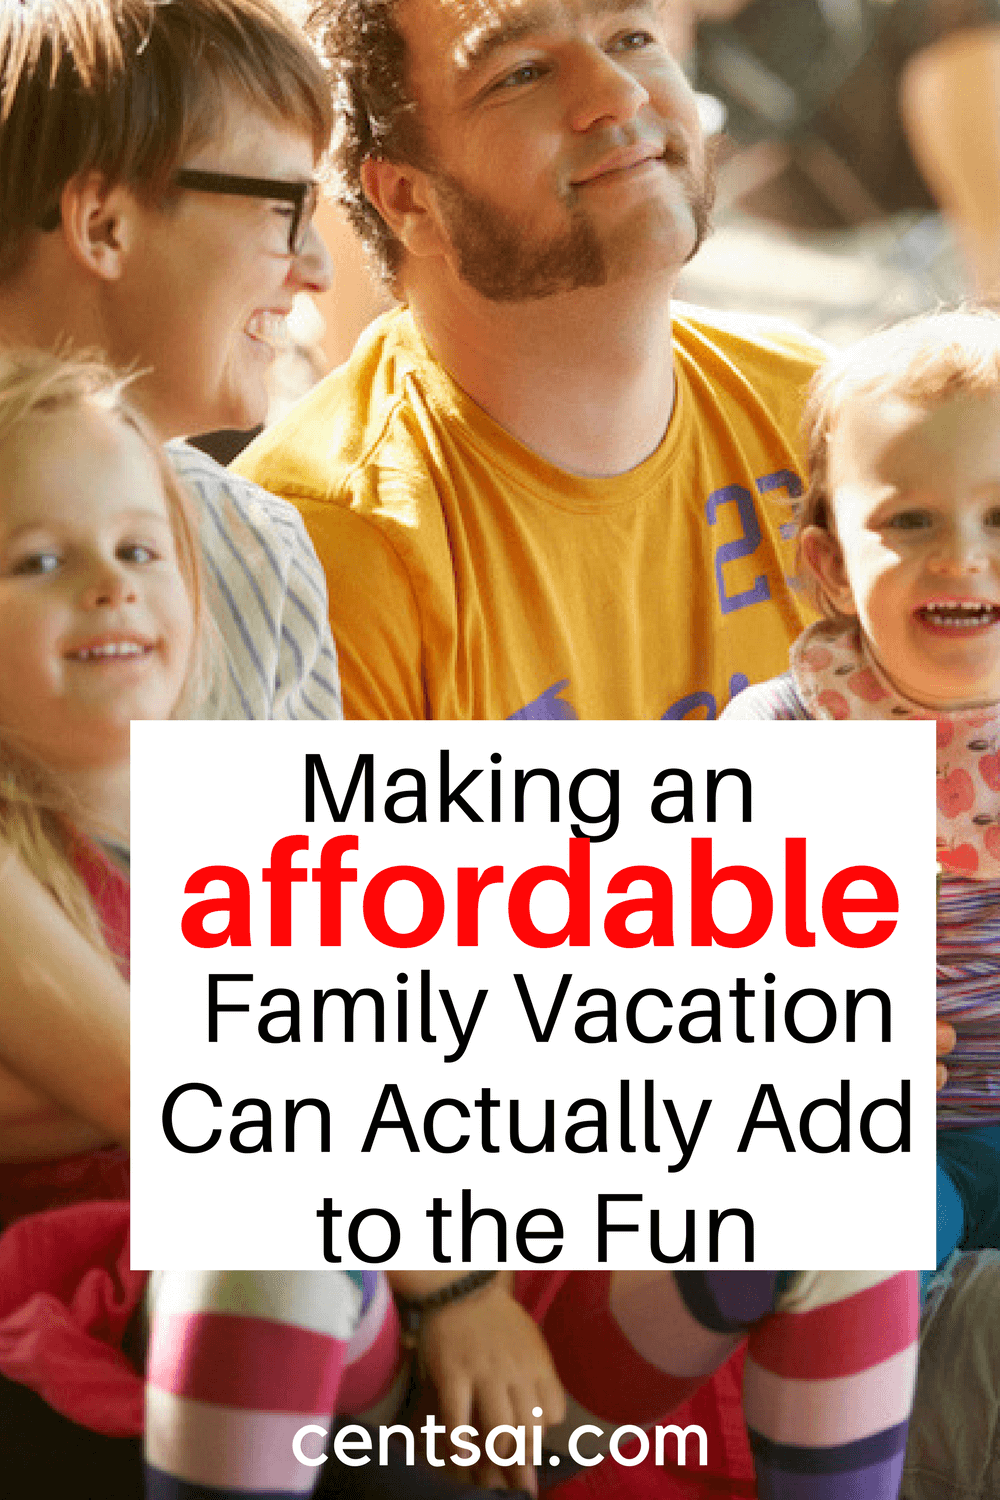 Making an Affordable Family Vacation Can Actually Add to the Fun